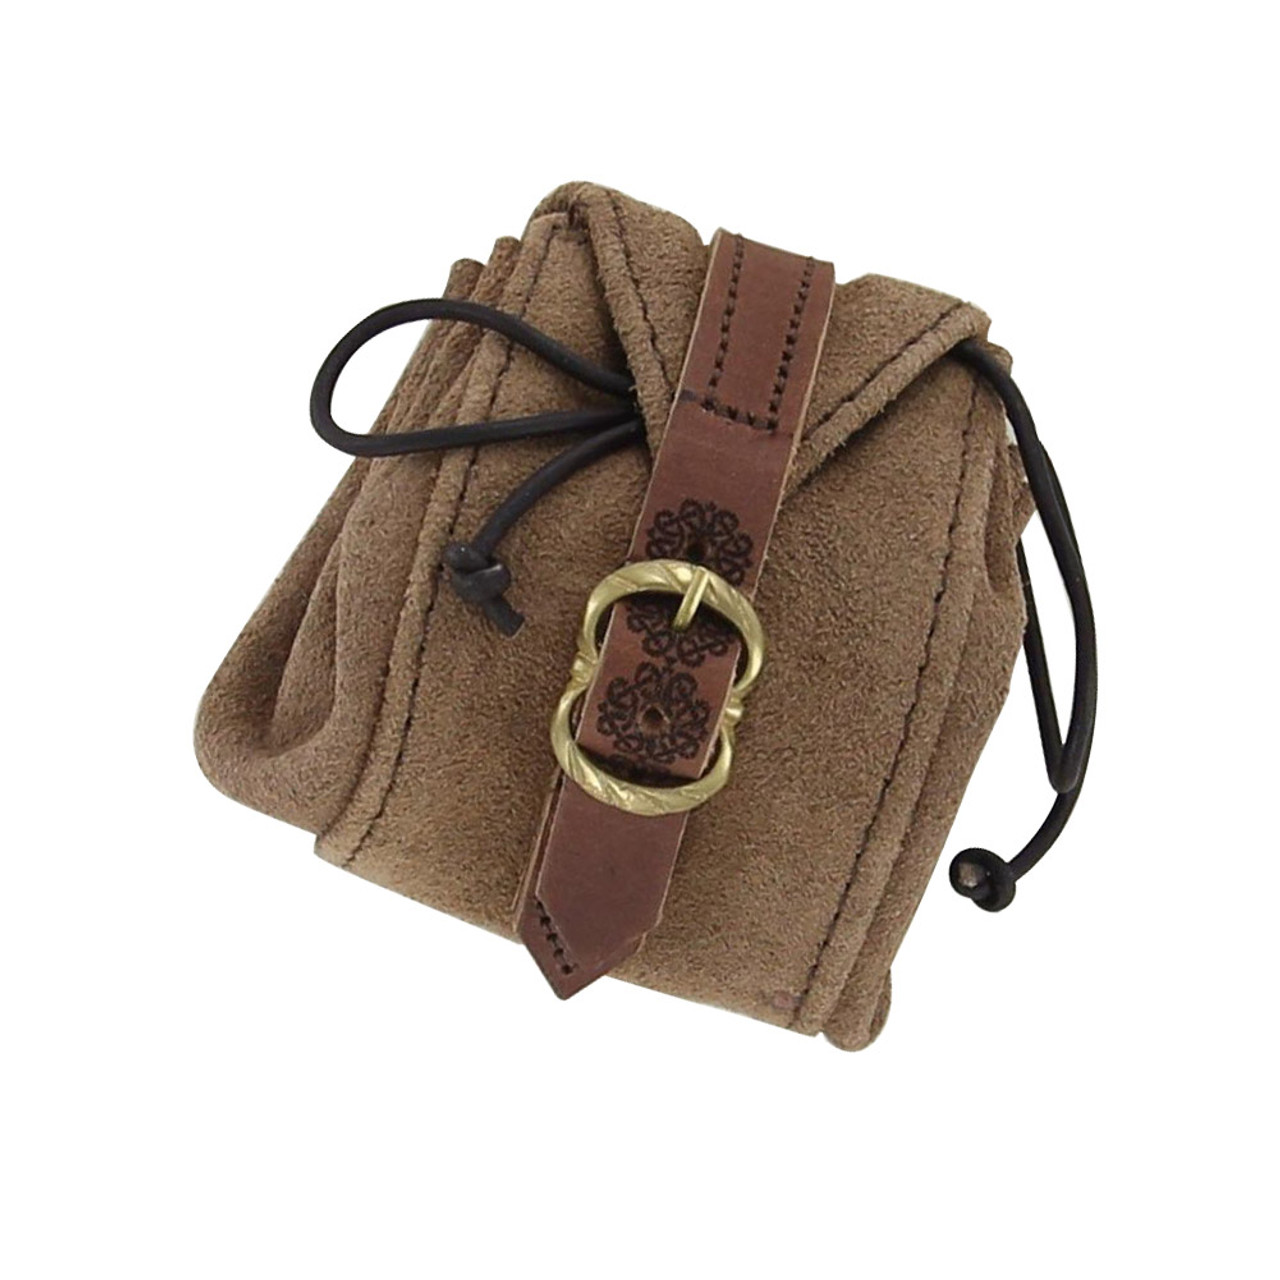 Medieval Small Suede Leather Strapped Drawstring Pouch